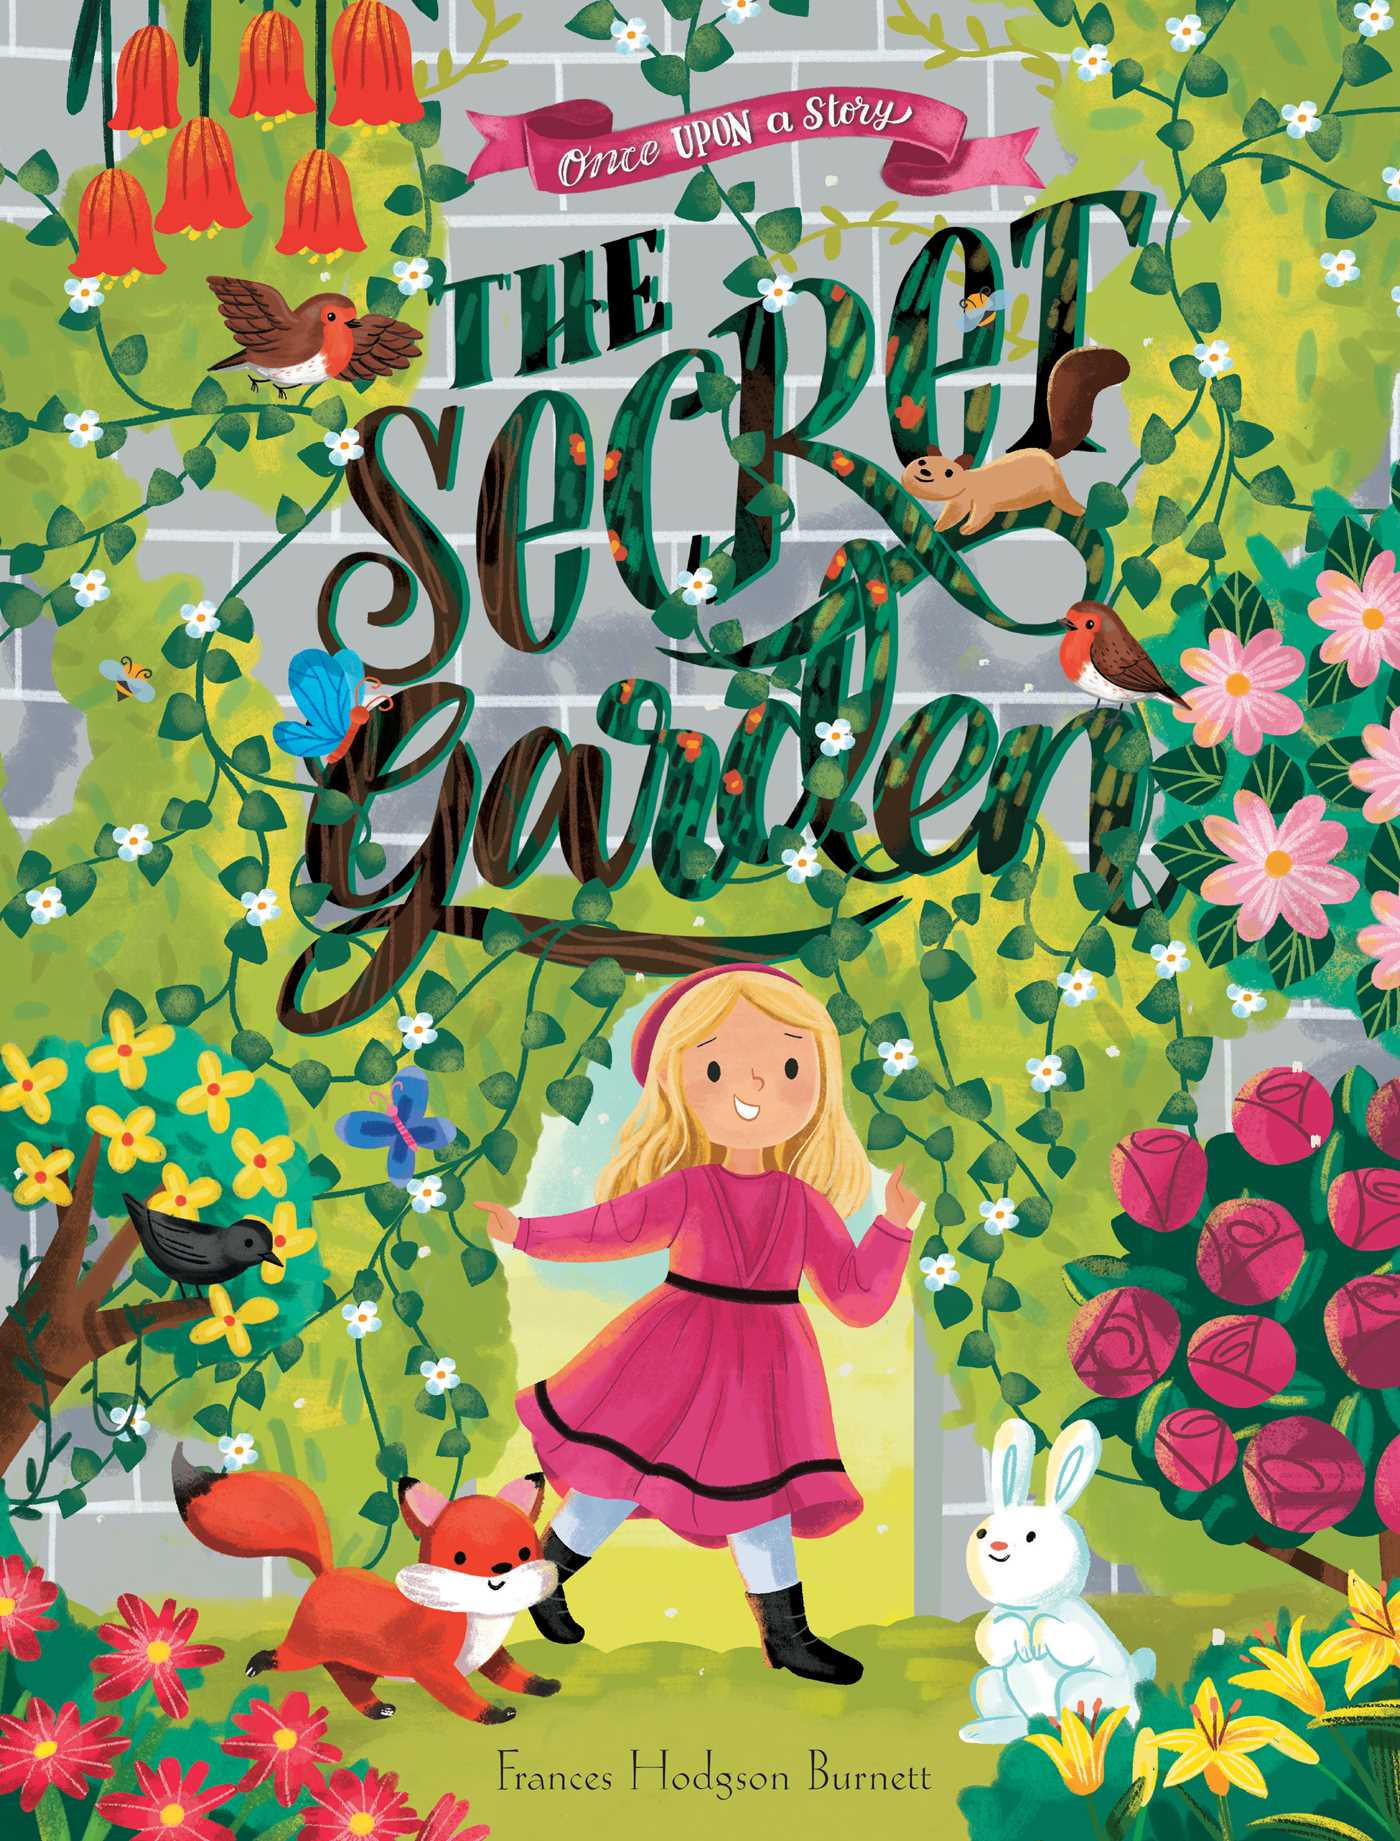 Once Upon A Story The Secret Garden Book By Frances Hodgson